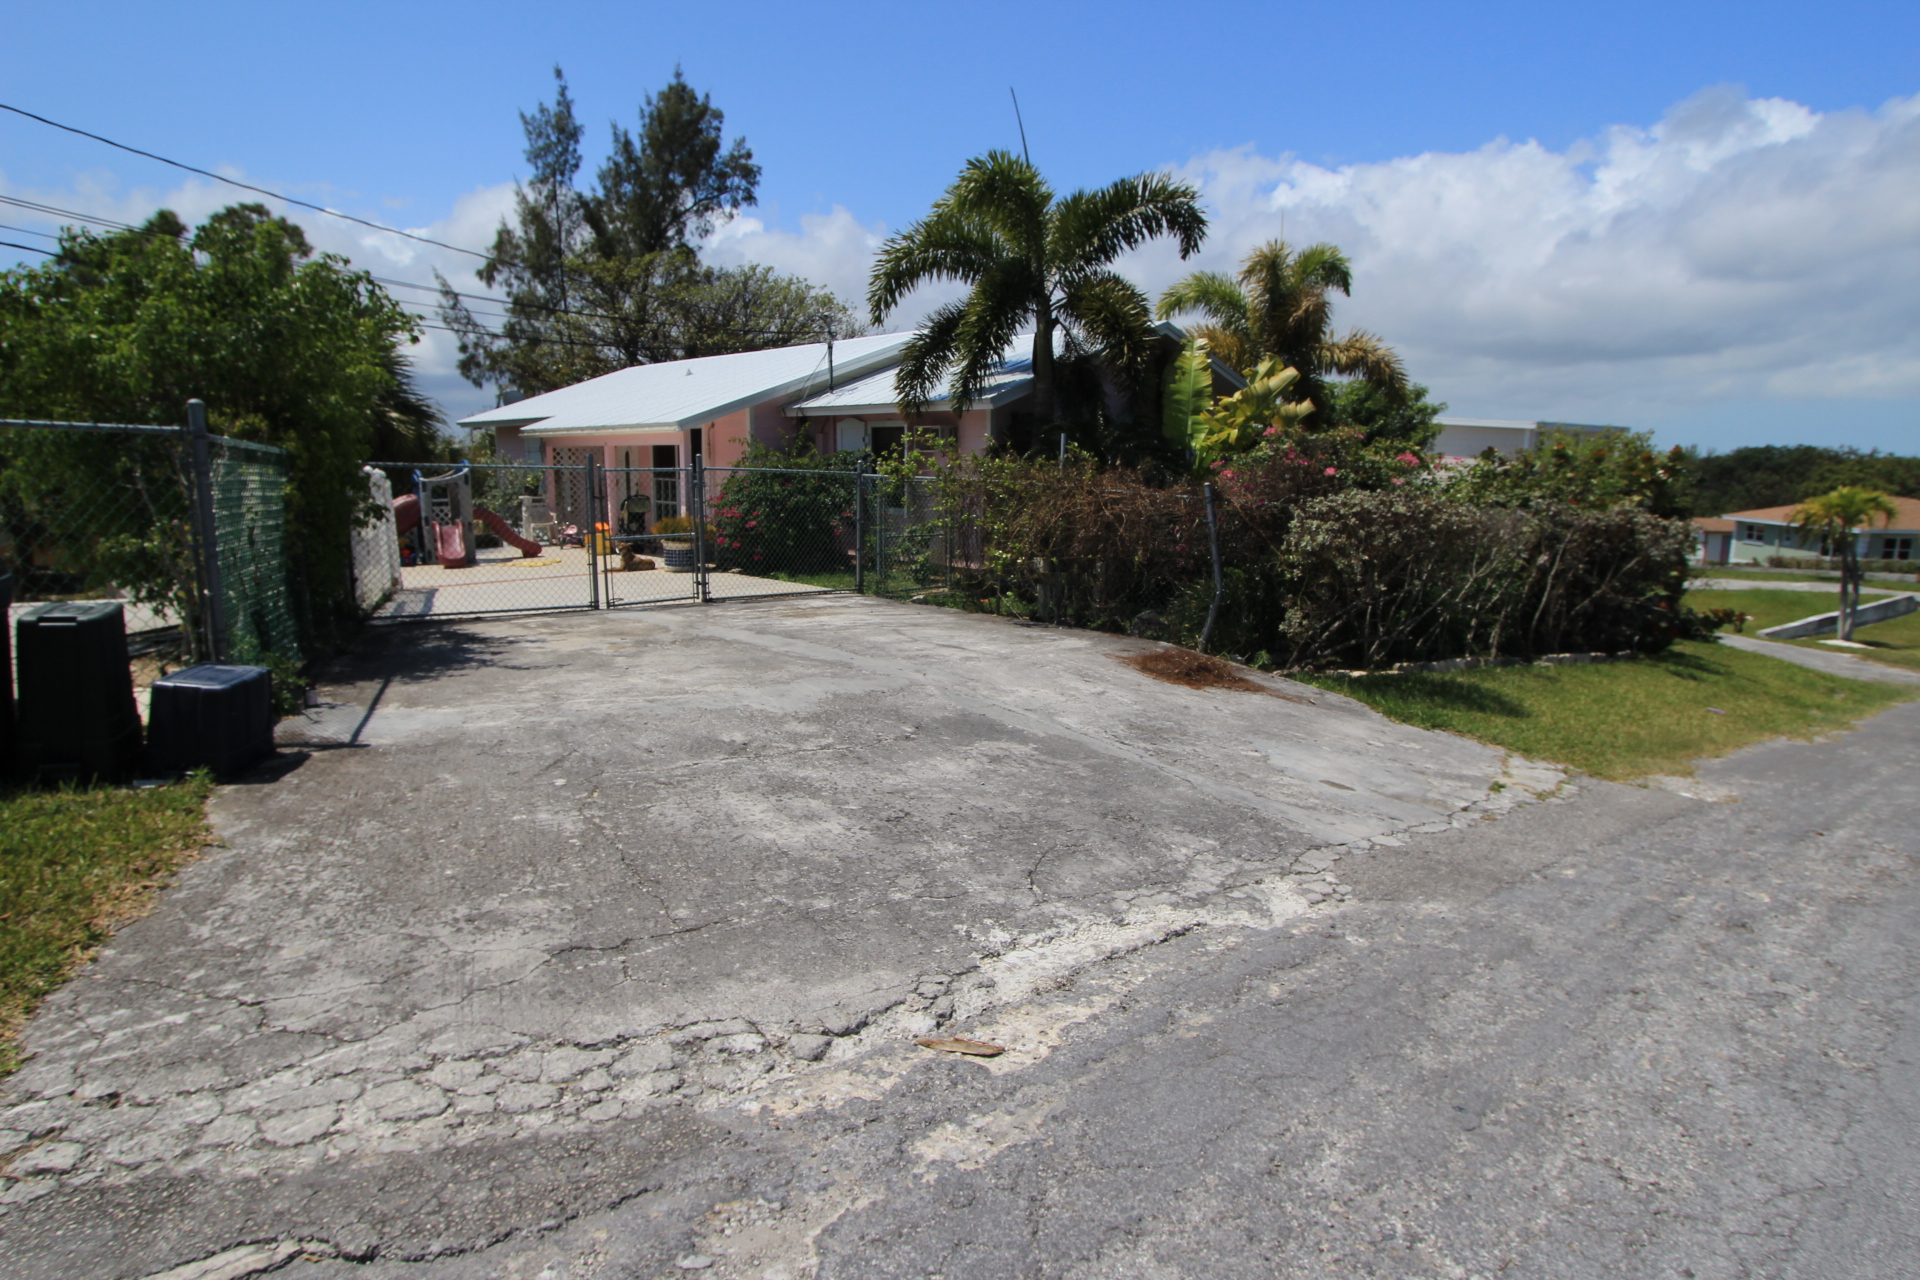 Single Family Home for Sale at Spacious Home with Efficiency - MLS 32047 Marsh Harbour, Abaco, Bahamas